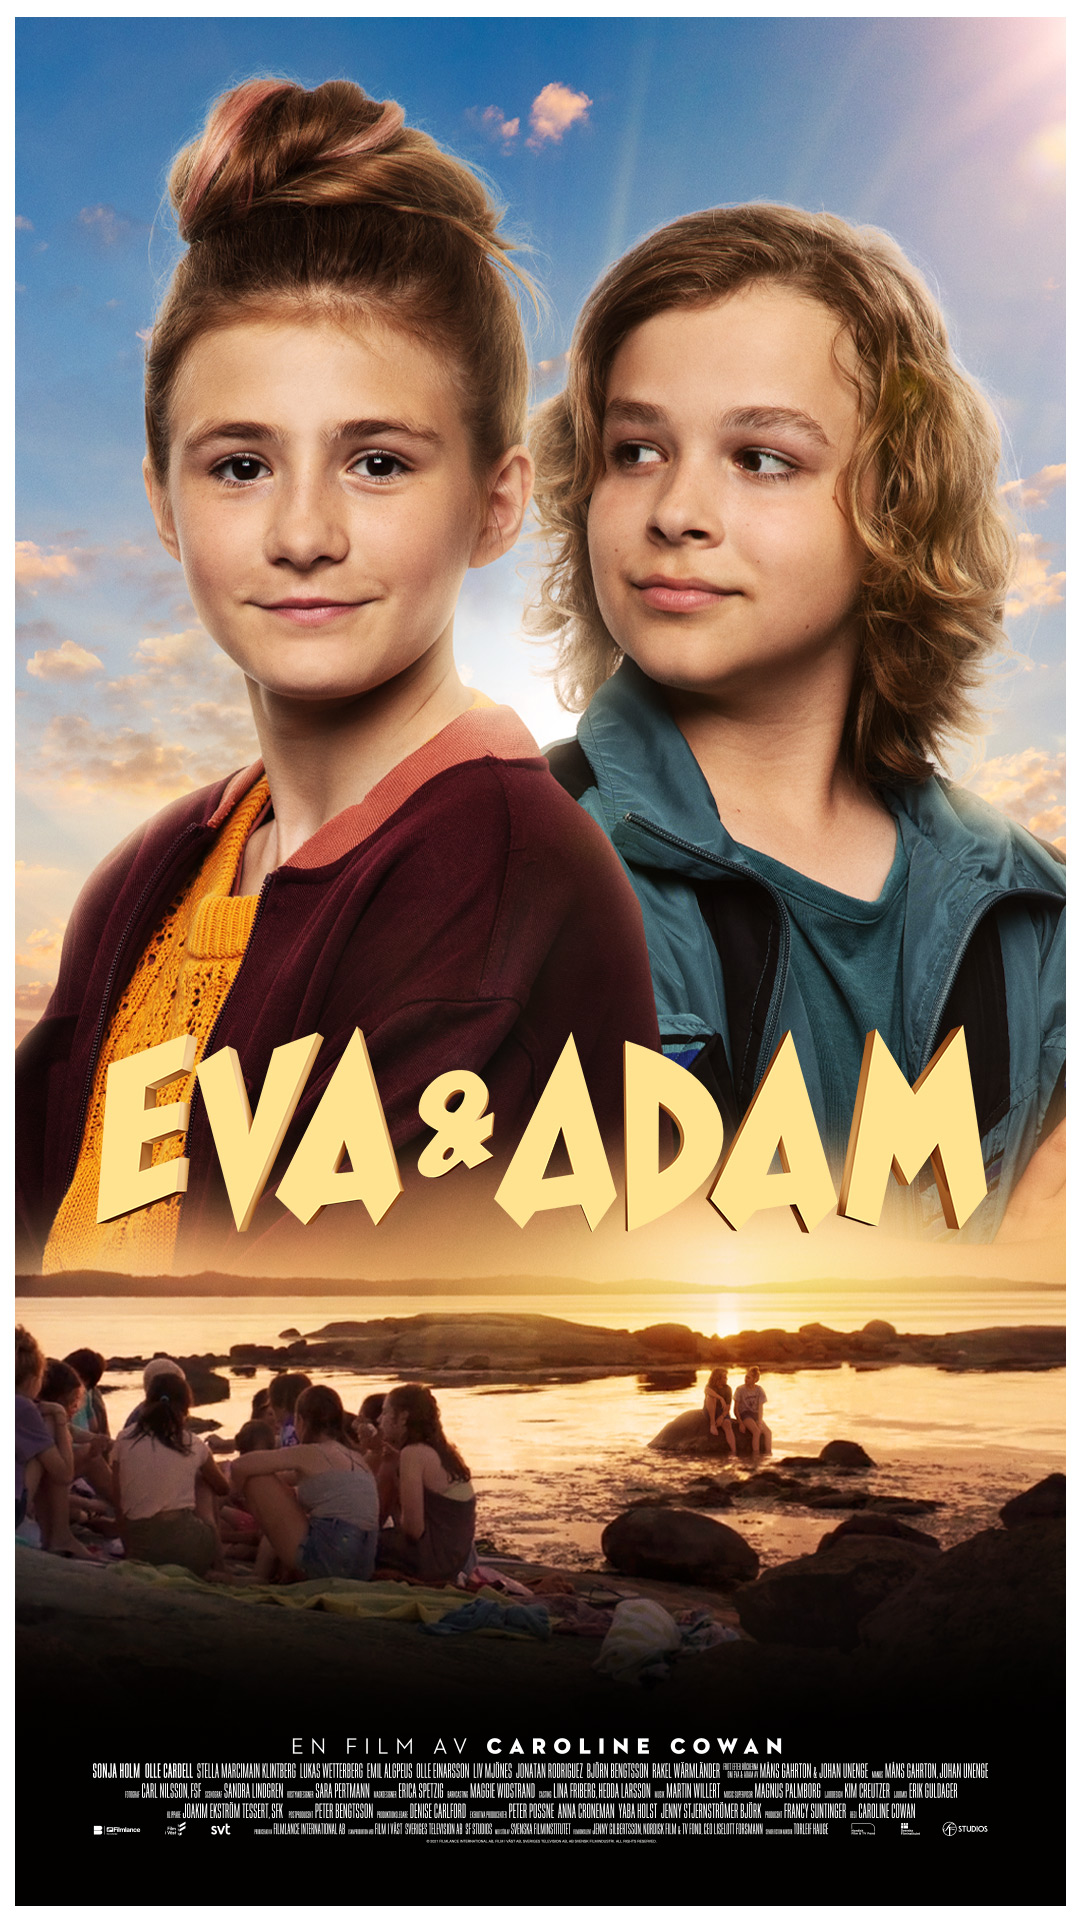 You are currently viewing Eva och Adam